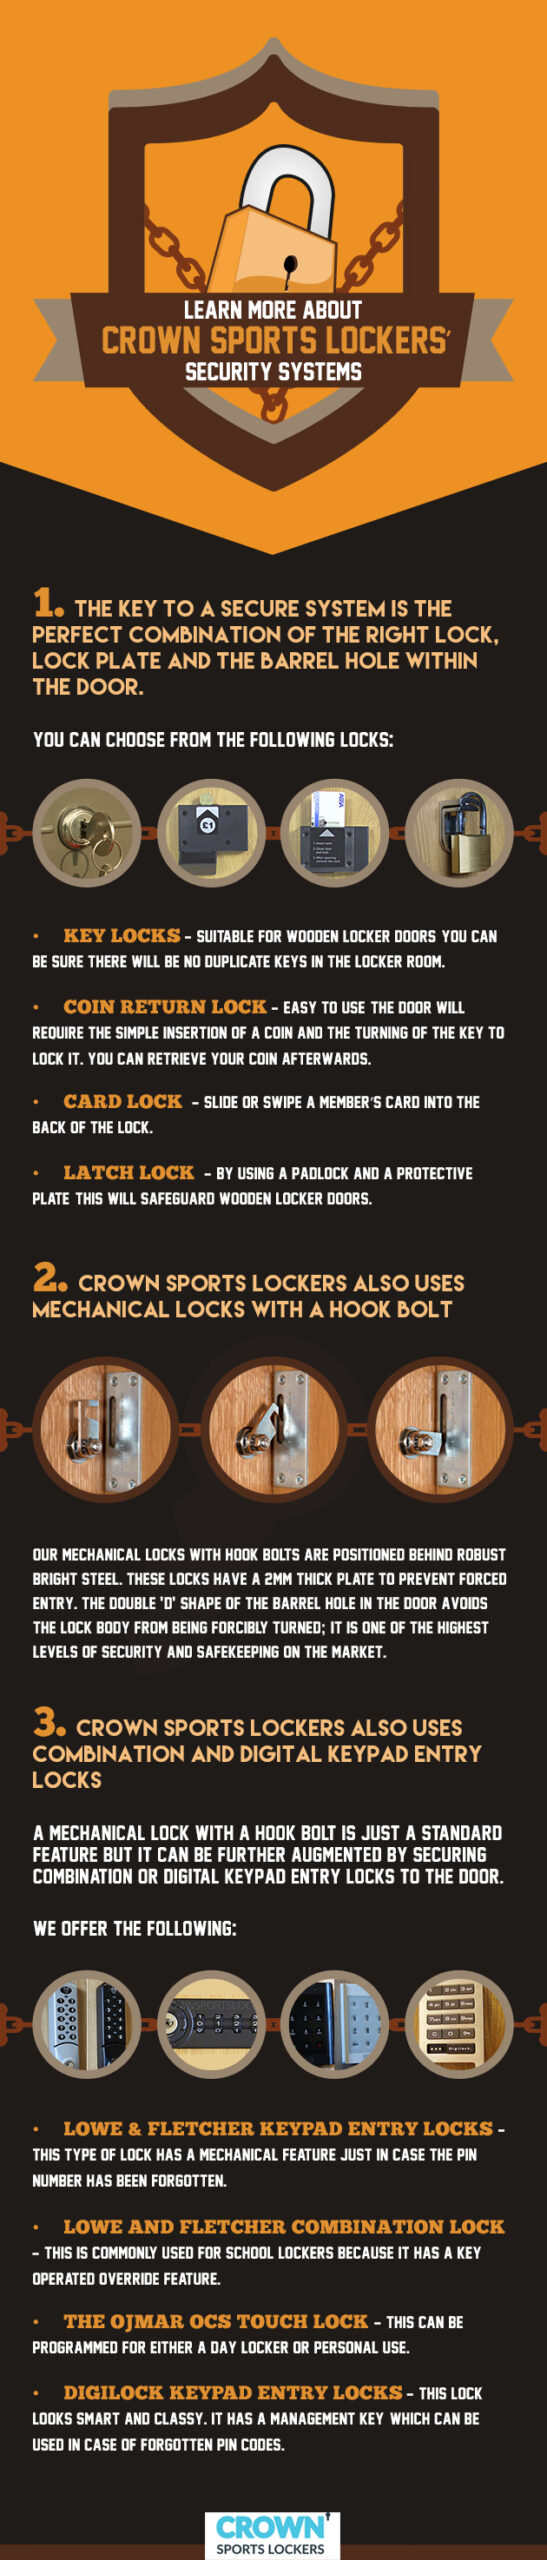 Crown-Sports-Locker-Know-more-about-Crown-Sports-Lockers-Security-System-Infographics